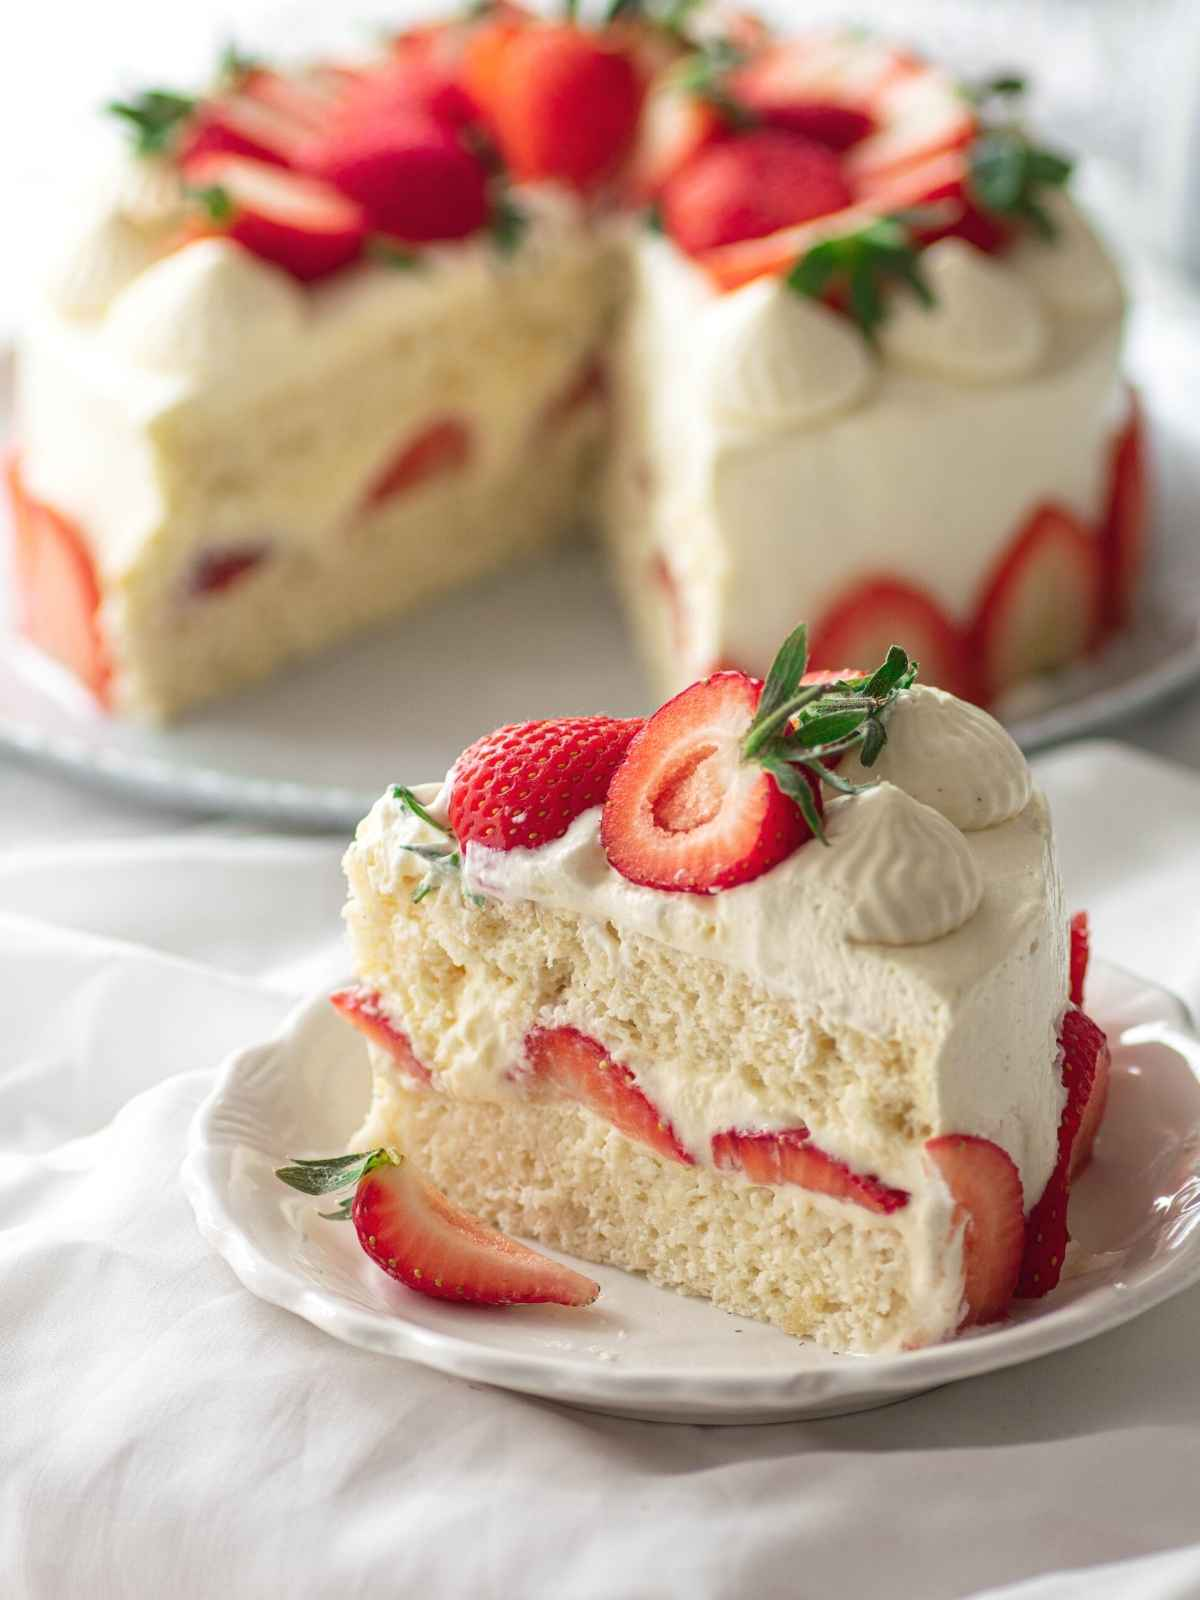 Slice of Japanese strawberry shortcake on plate with full cake in the background